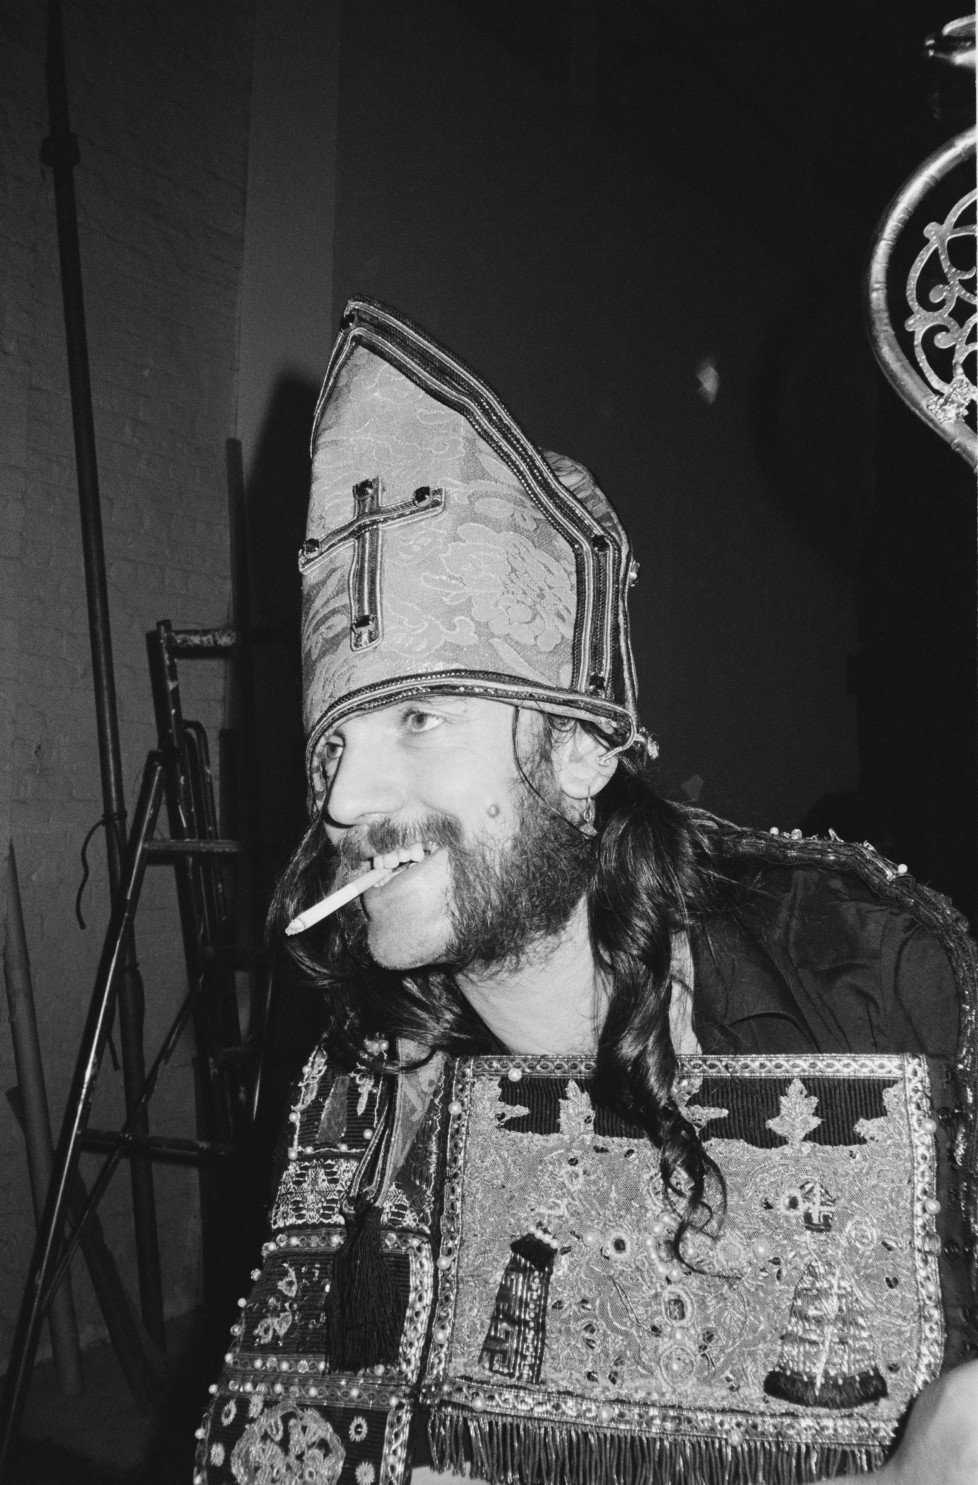 LONDON - 1st JULY: Lemmy Kilmister from Motorhead posed wearing a bishop's mitre hat and smoking a cigarette during the photo session for the 'Killed By Death' single in Pimlico, london in July 1984. (Photo by Fin Costello/Redferns)